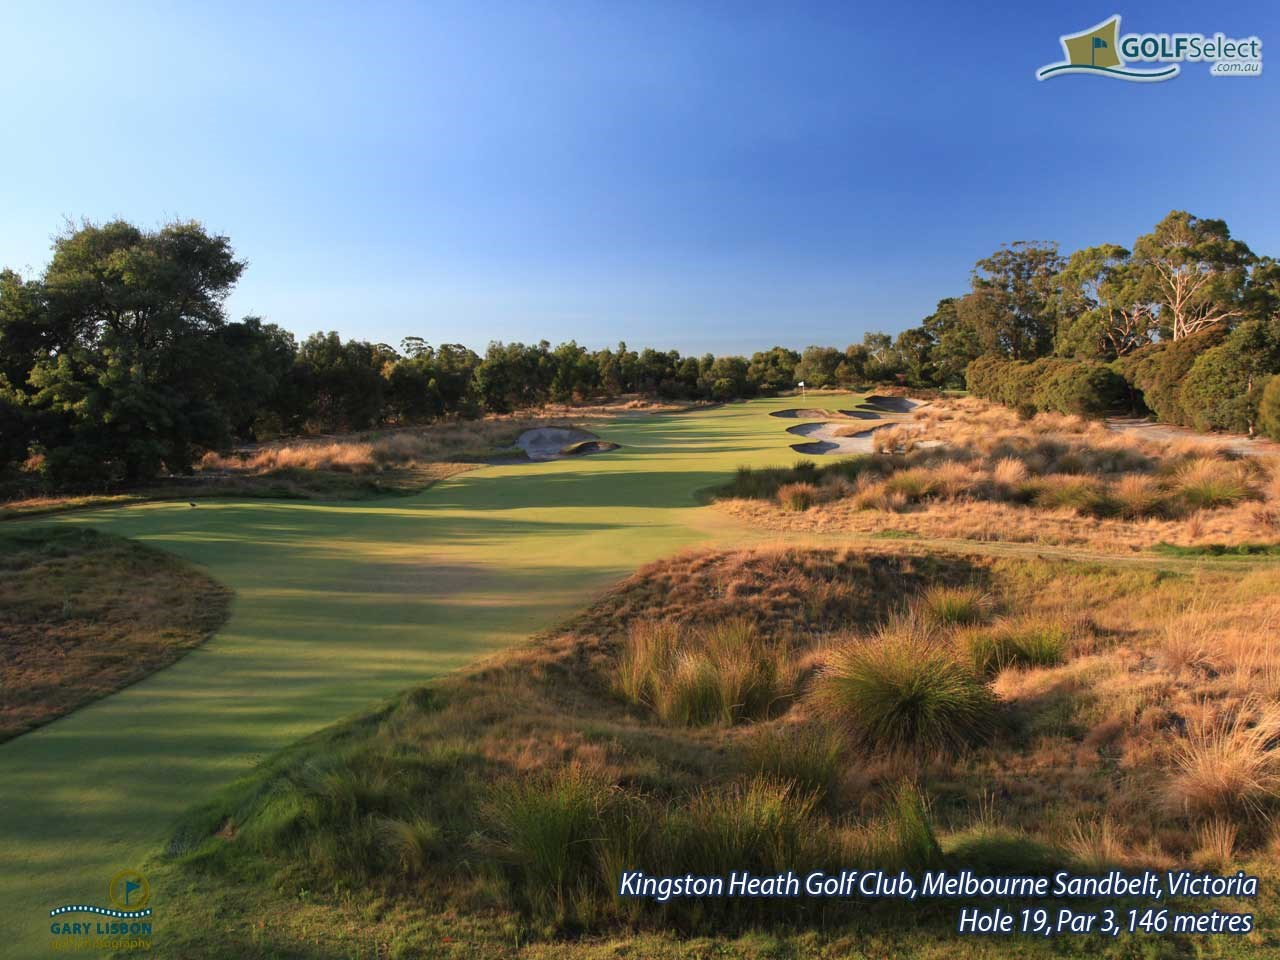 Kingston Heath Golf Club Hole 19, Par 3, 146 metres